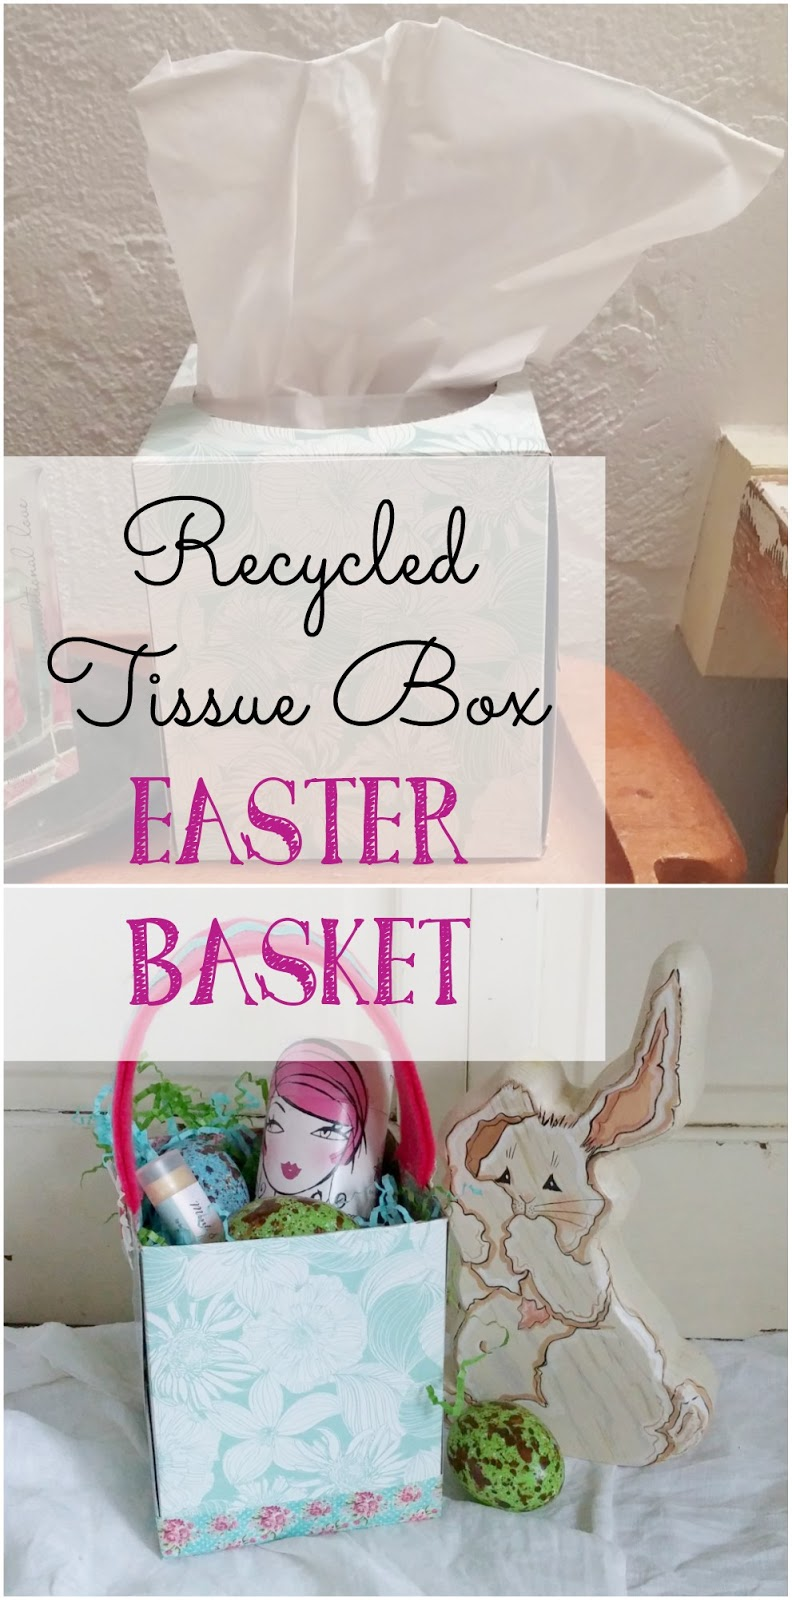 How to make an Easter basket from a recycled tissue box